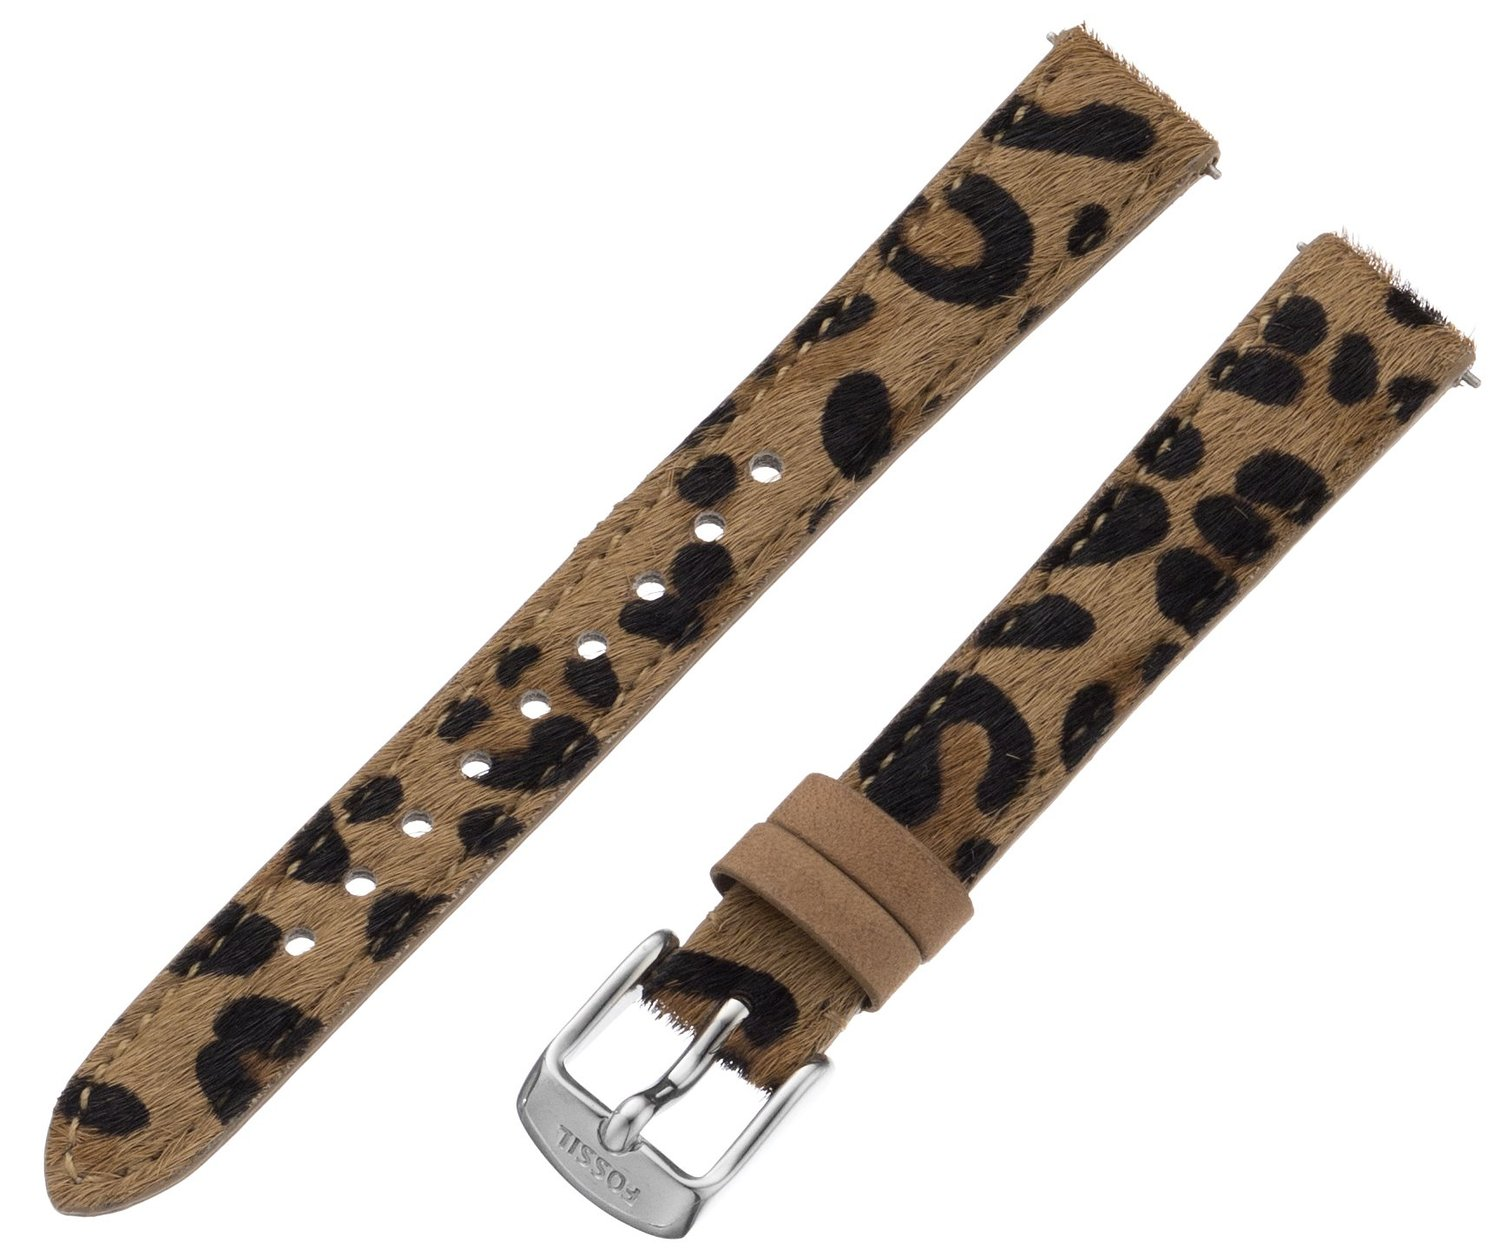 af1a3942e Fossil S141068 Women's Leather Watch Strap - Cheetah Print 14mm